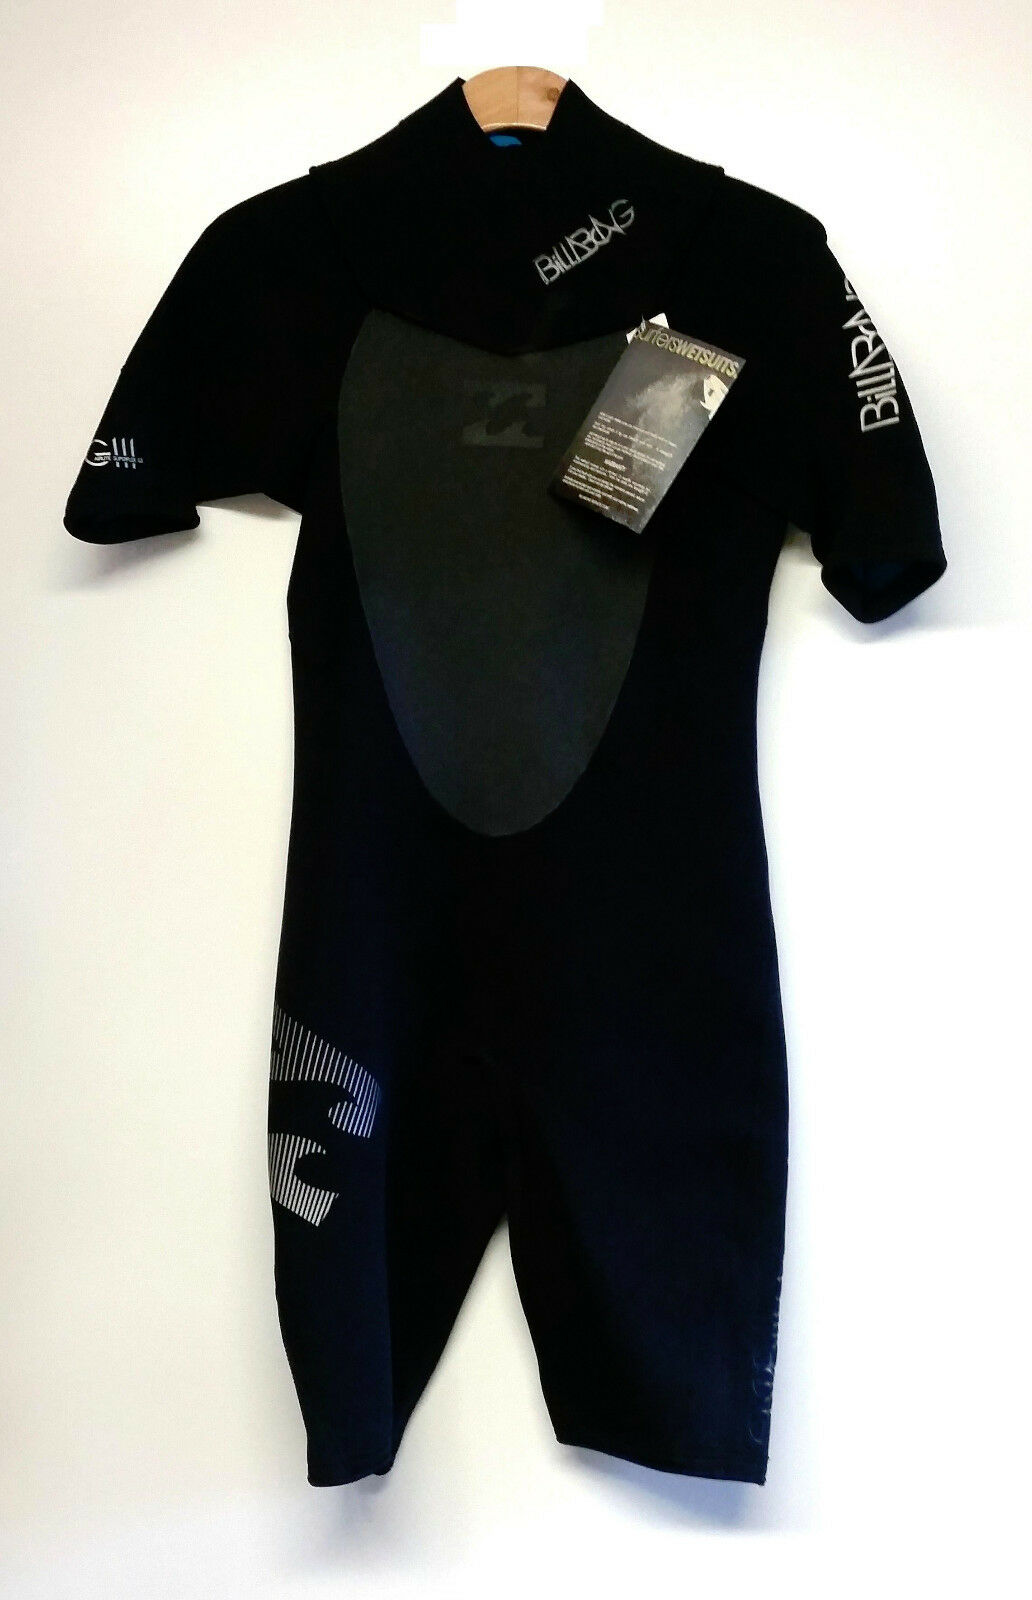 BILLABONG Men's 2mm REVOLUTION GBS S S Springsuit - BLK - Size MS - NWT